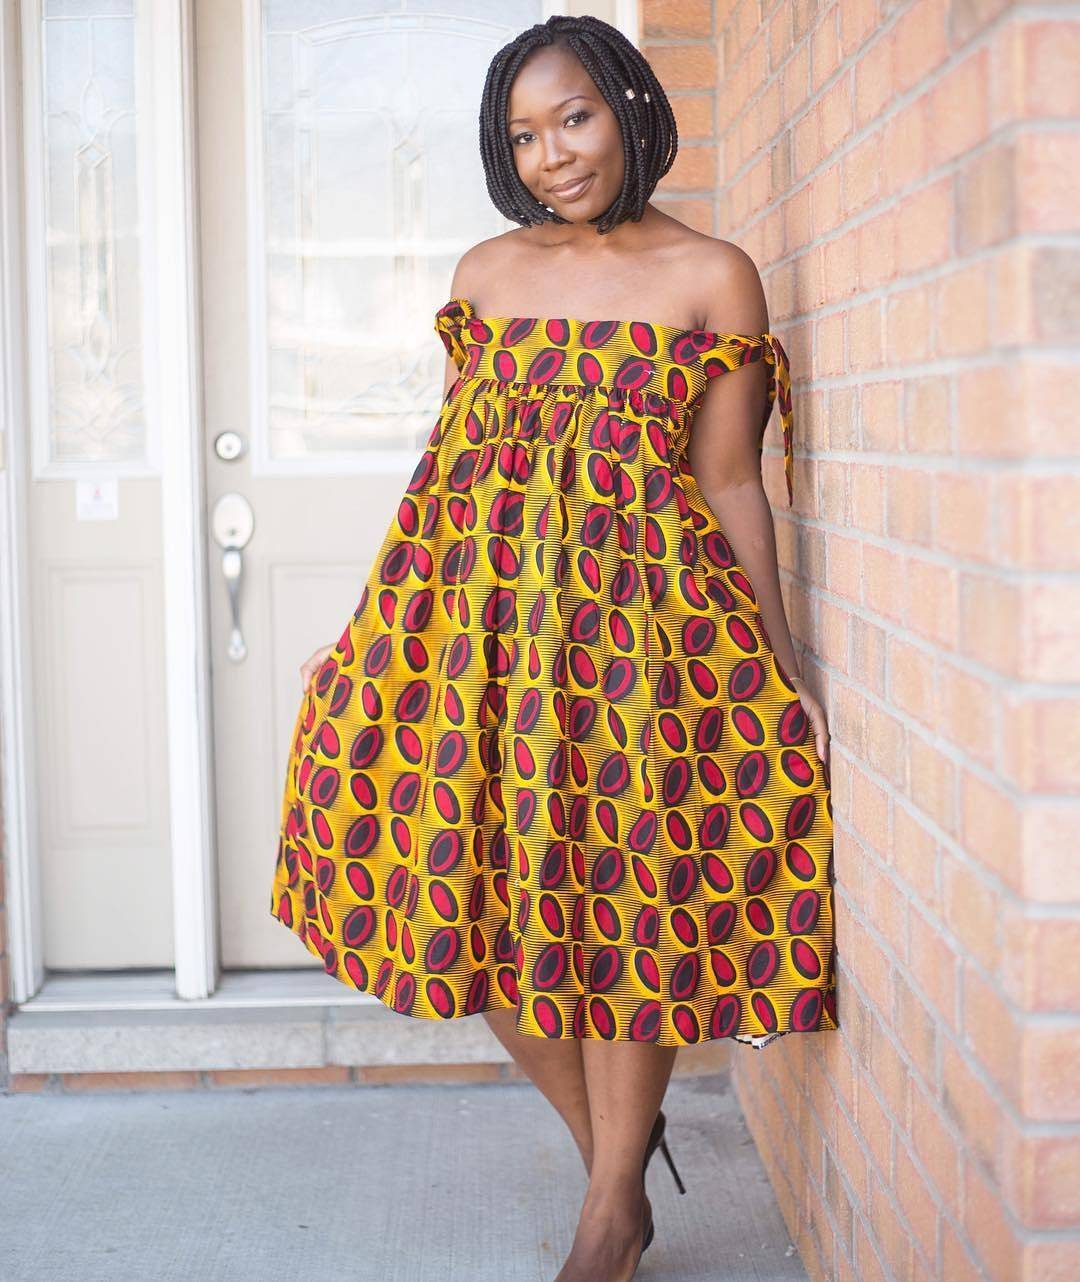 Ankara Styles #386: For The Love Of Dresses!